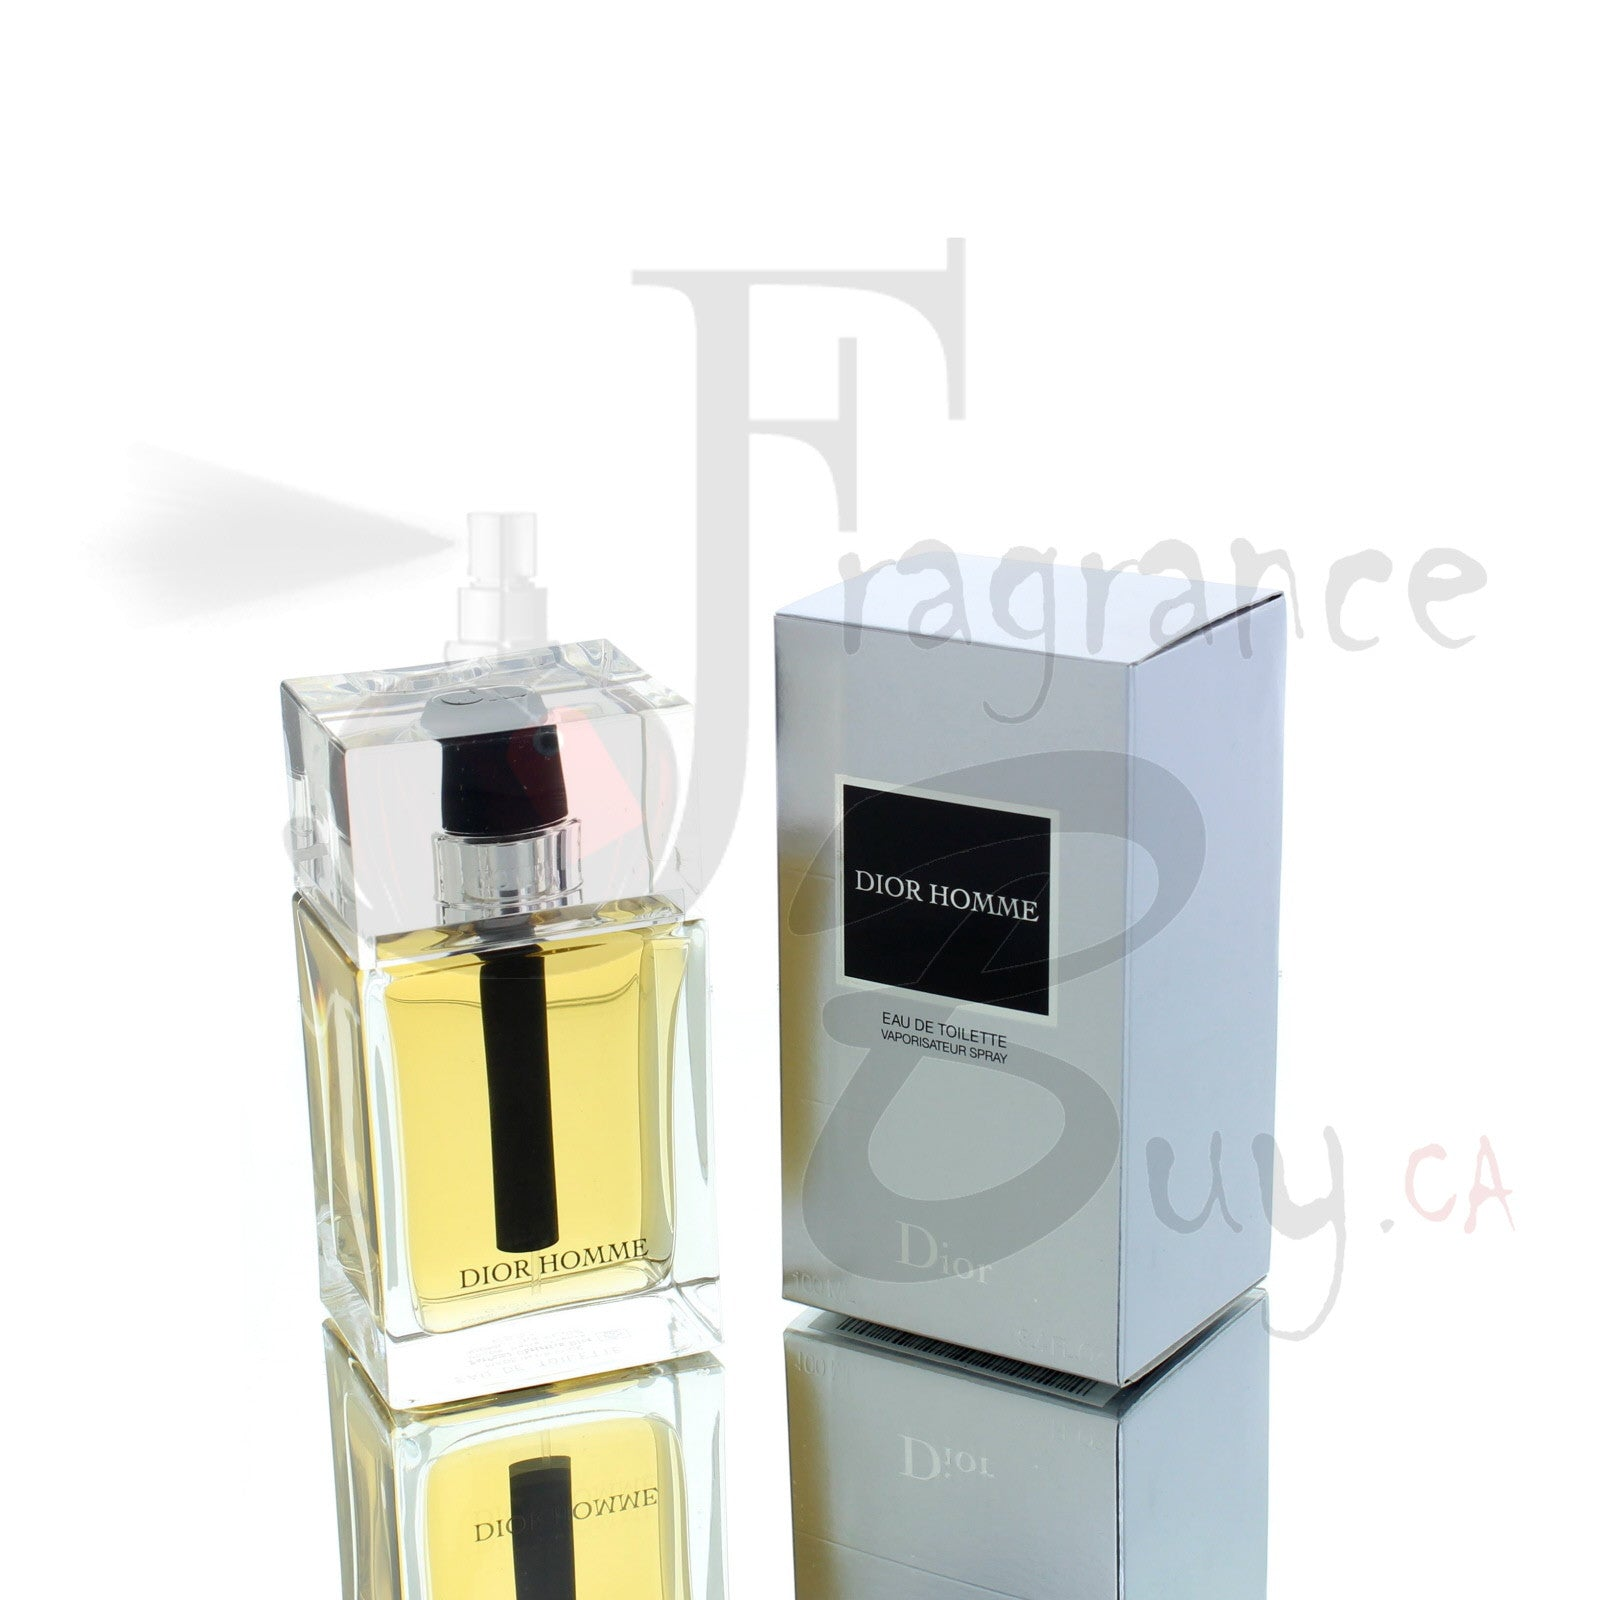 Dior Homme (Original Edition) by Christian Dior For Man